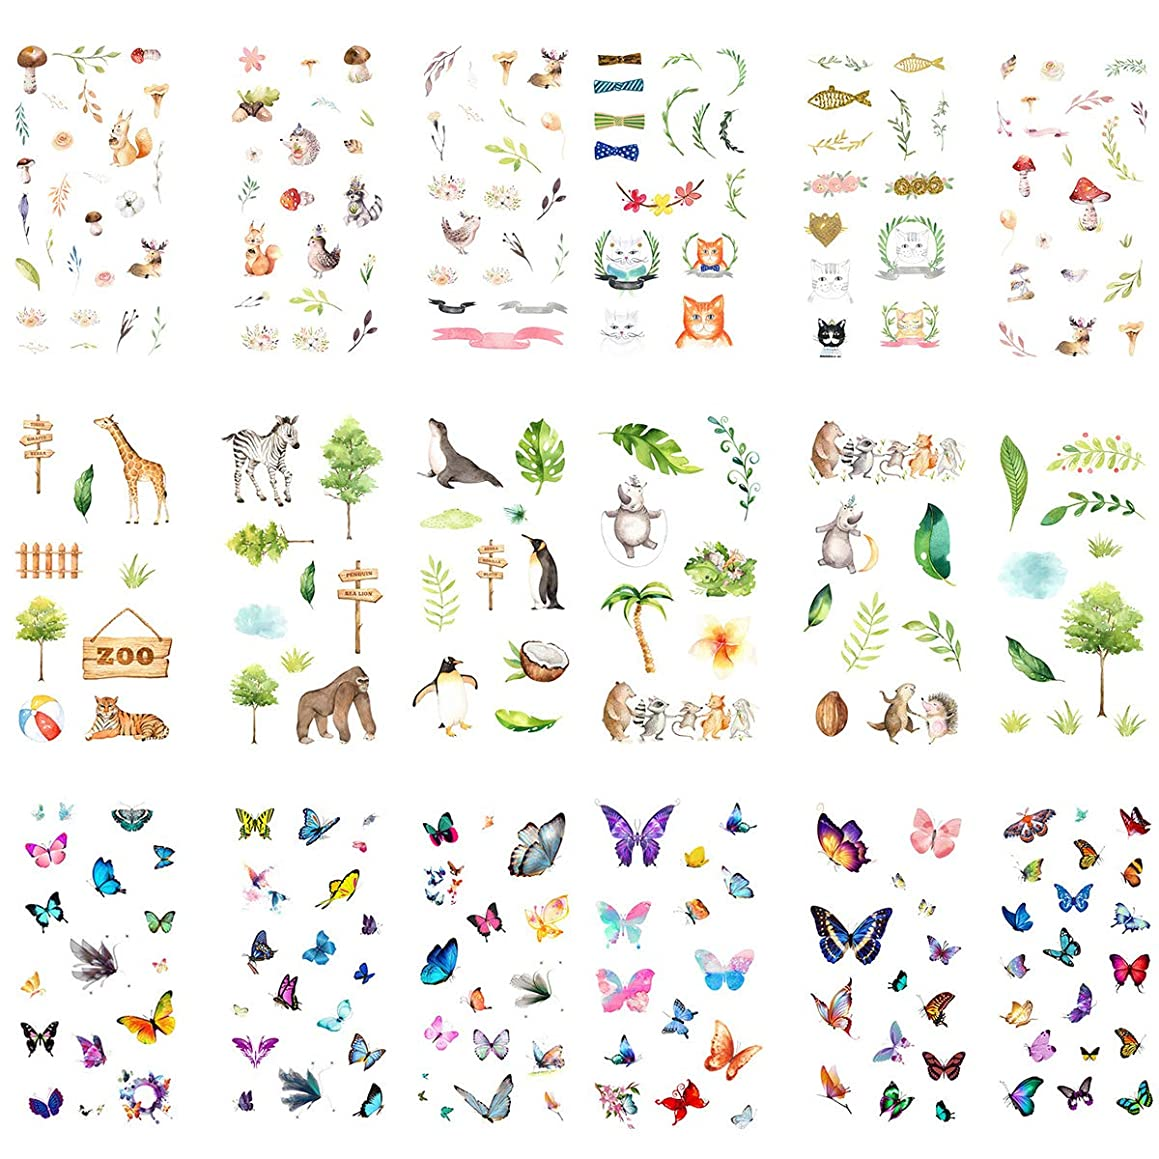 Kawaii Sticker Set (18 Sheets) Cute Forest Animal Zoo Zebra Penguin Hedgehog Tiger Cat Deer Bird Colorful Butterfly Stationery Stickers Scrapbooking Journal Diary Planner DIY Craft Decorative Label